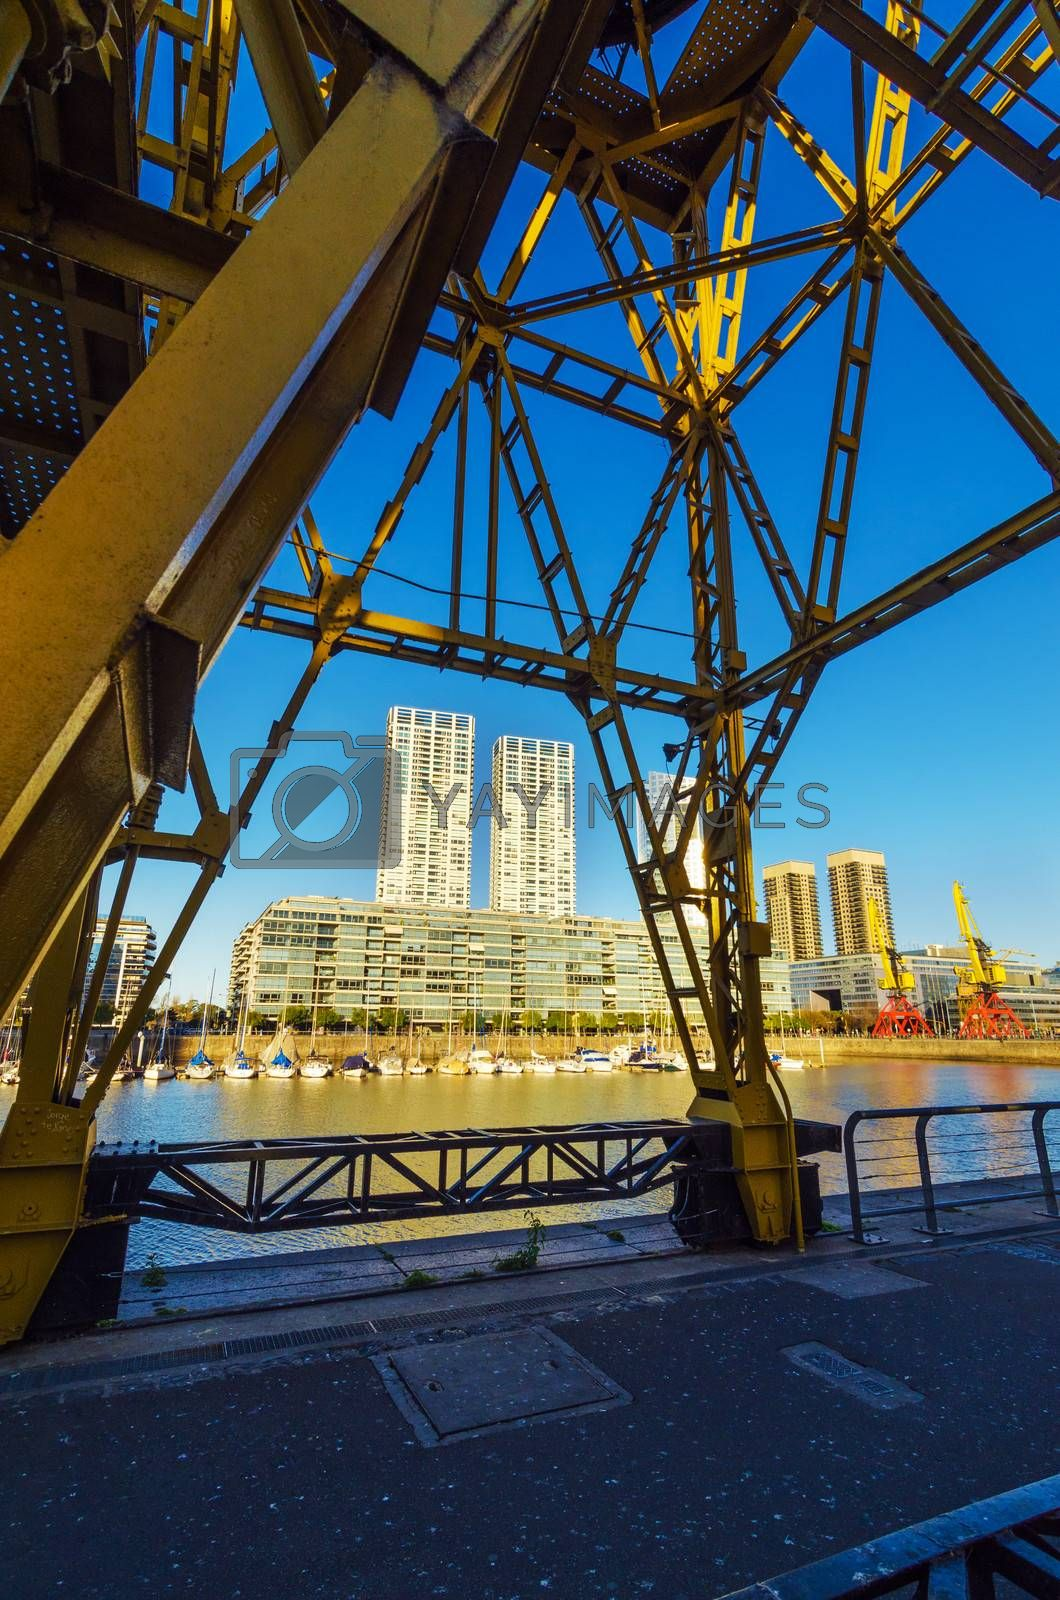 View of Puerto Madero skyscrapers as seen from under a crane in Buenos Aires